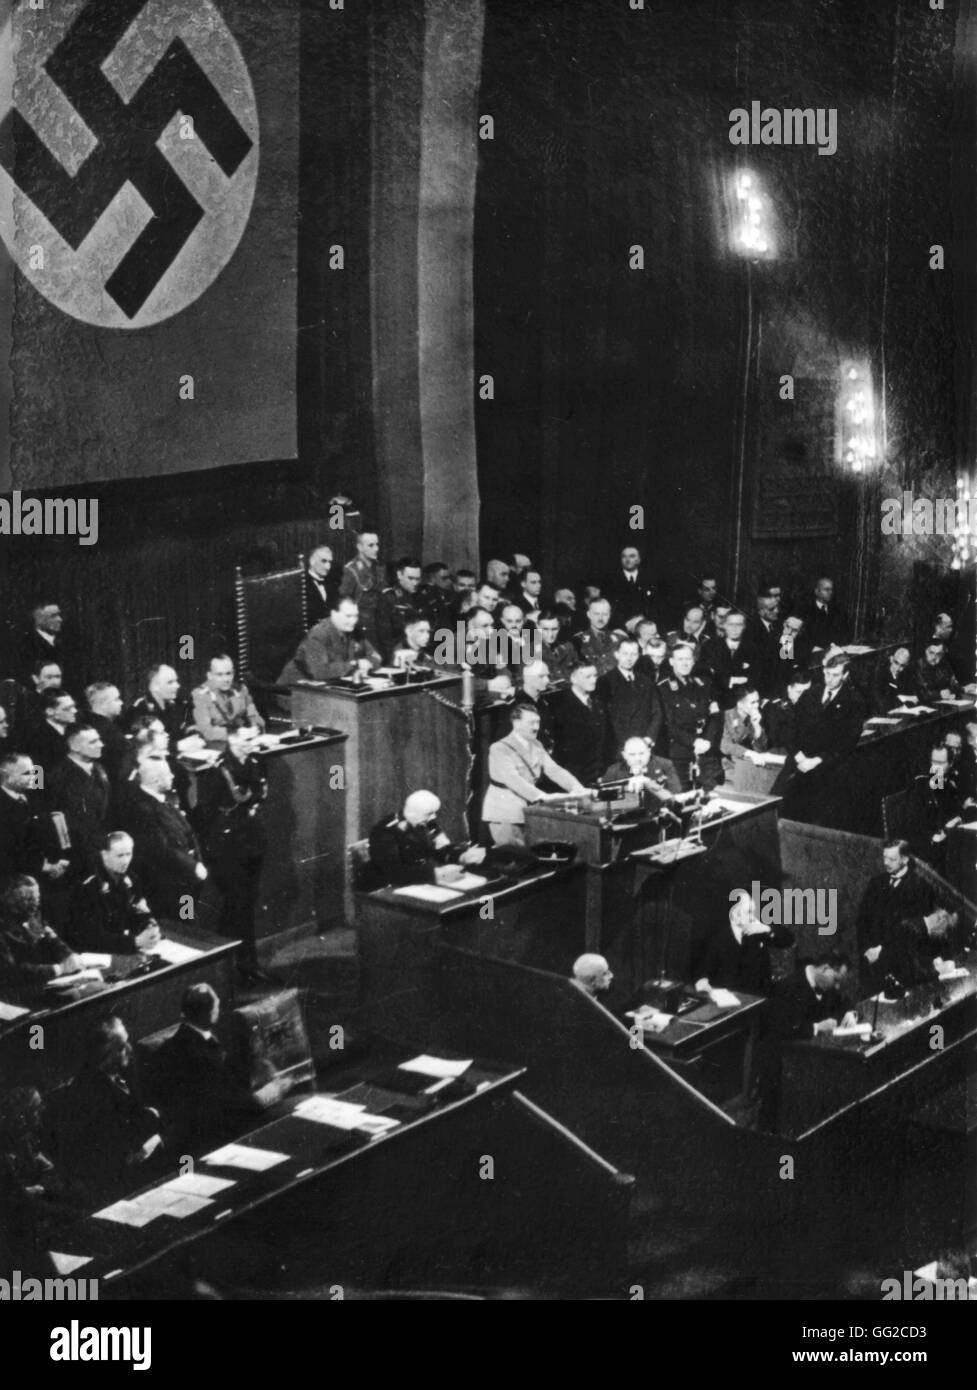 Hitler delivering a speech at the Reichstag, 1st anniversary of the National Socialist victory January 30, 1934 - Stock Image